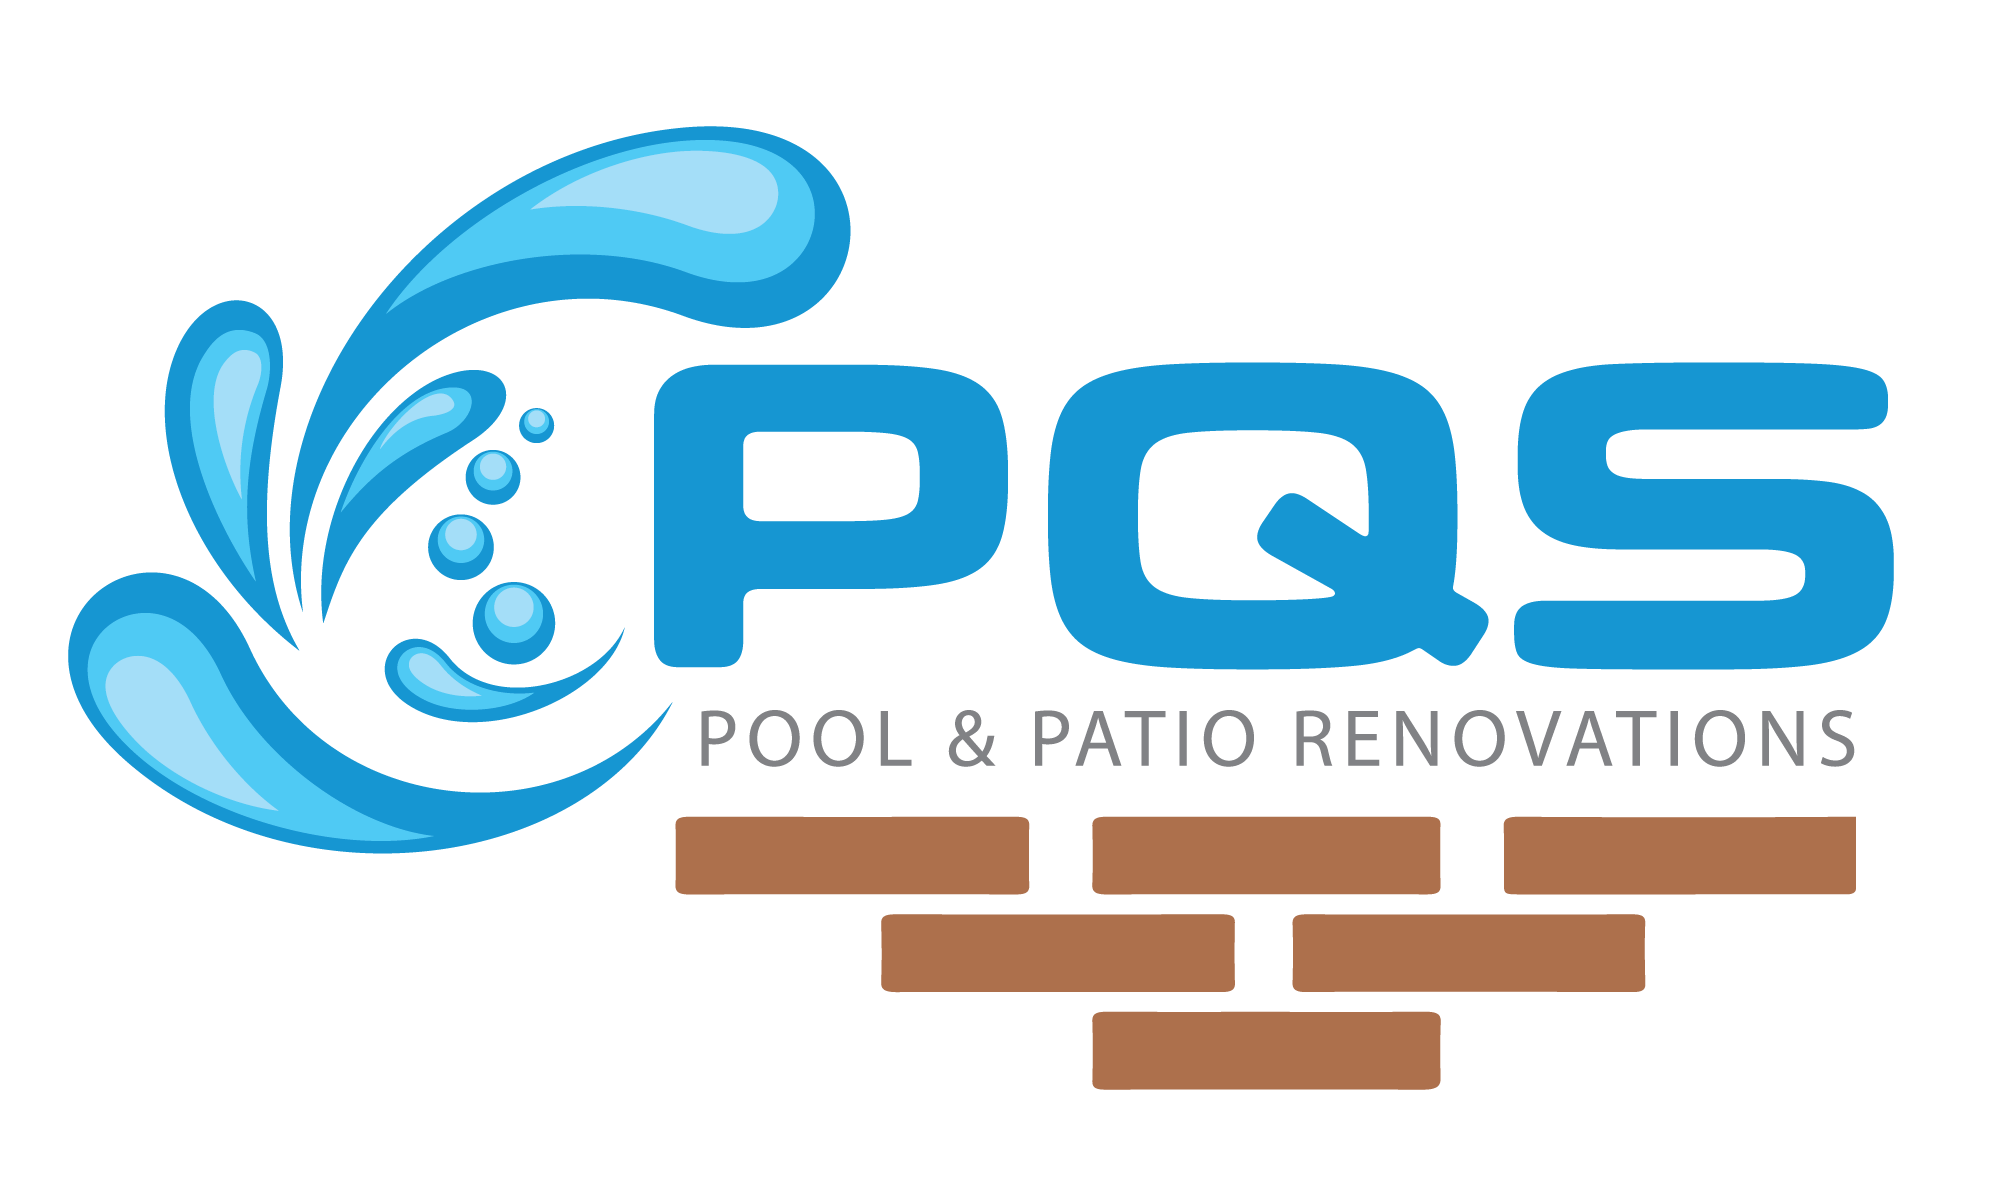 logo- PQS Pool & Patio Renovations